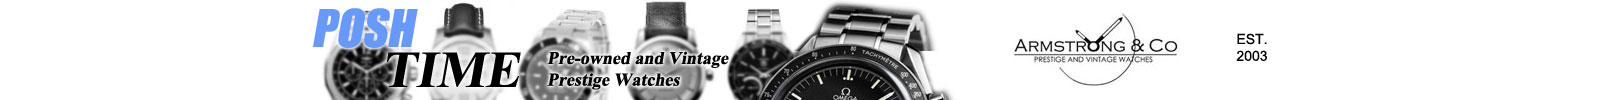 Vintage watch dealer, specialising in Omega watches and other prestige brands